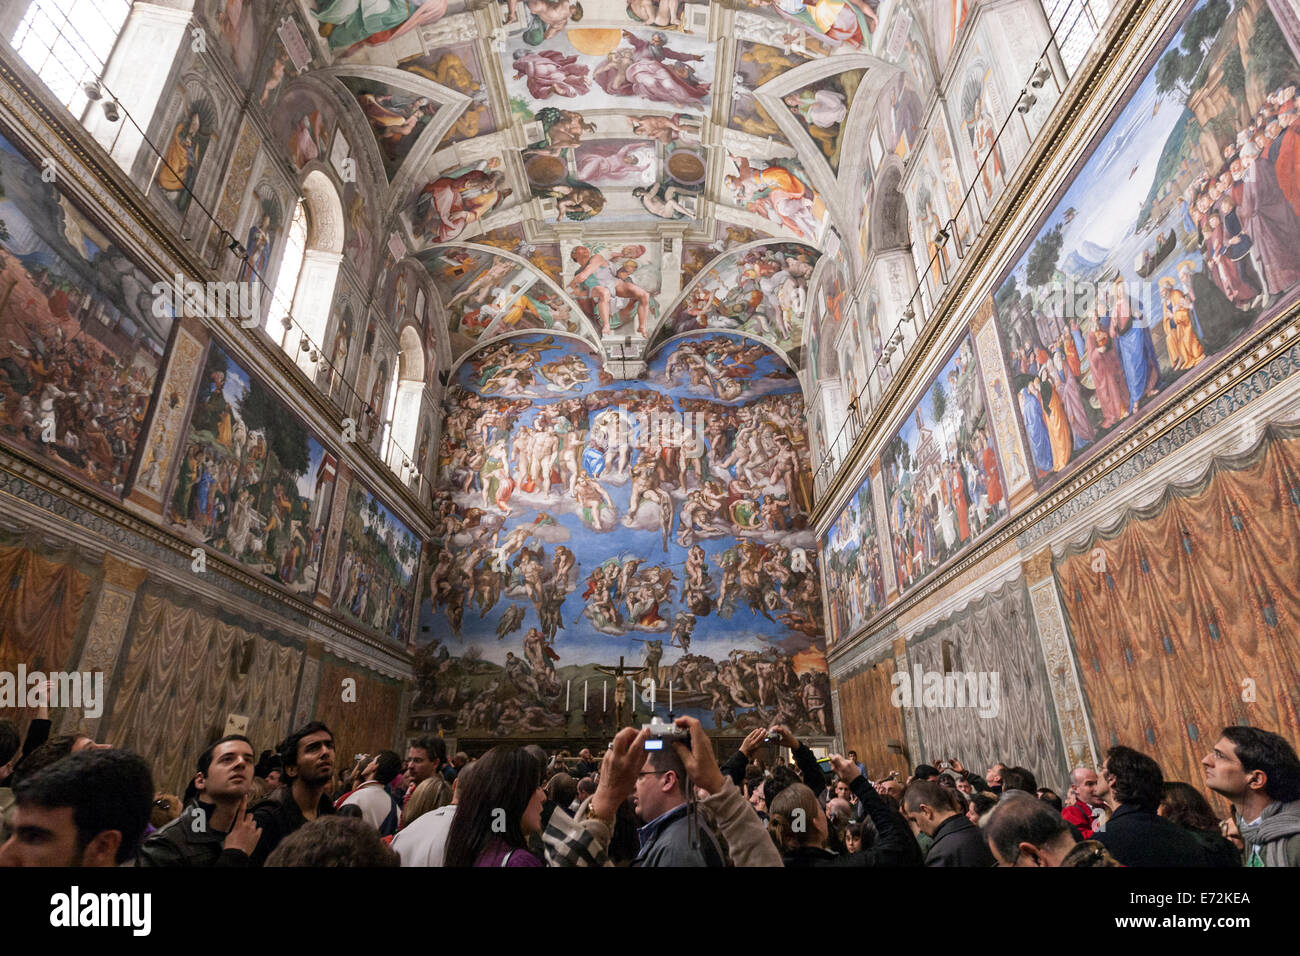 87f5cc53e821 Tourist taking pictures to The Creation of Adam by Michelangelo Sistine  Chapel ceiling.